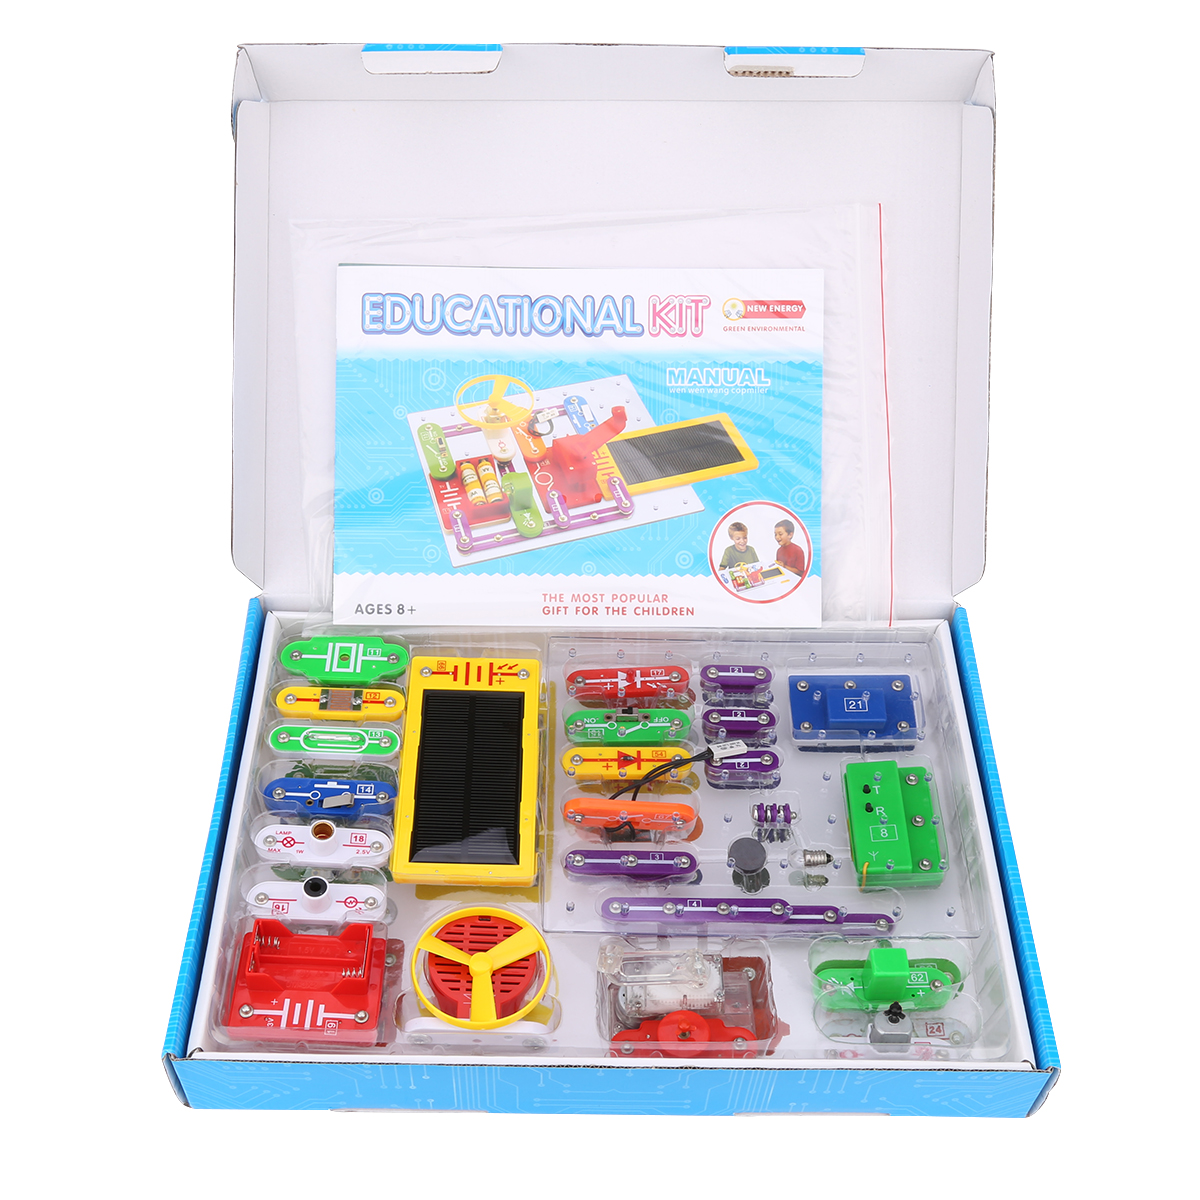 Virhuck W-688 Funny Electronics Discovery Kit Science Educational Toy Smart DIY Block Kit for Kids